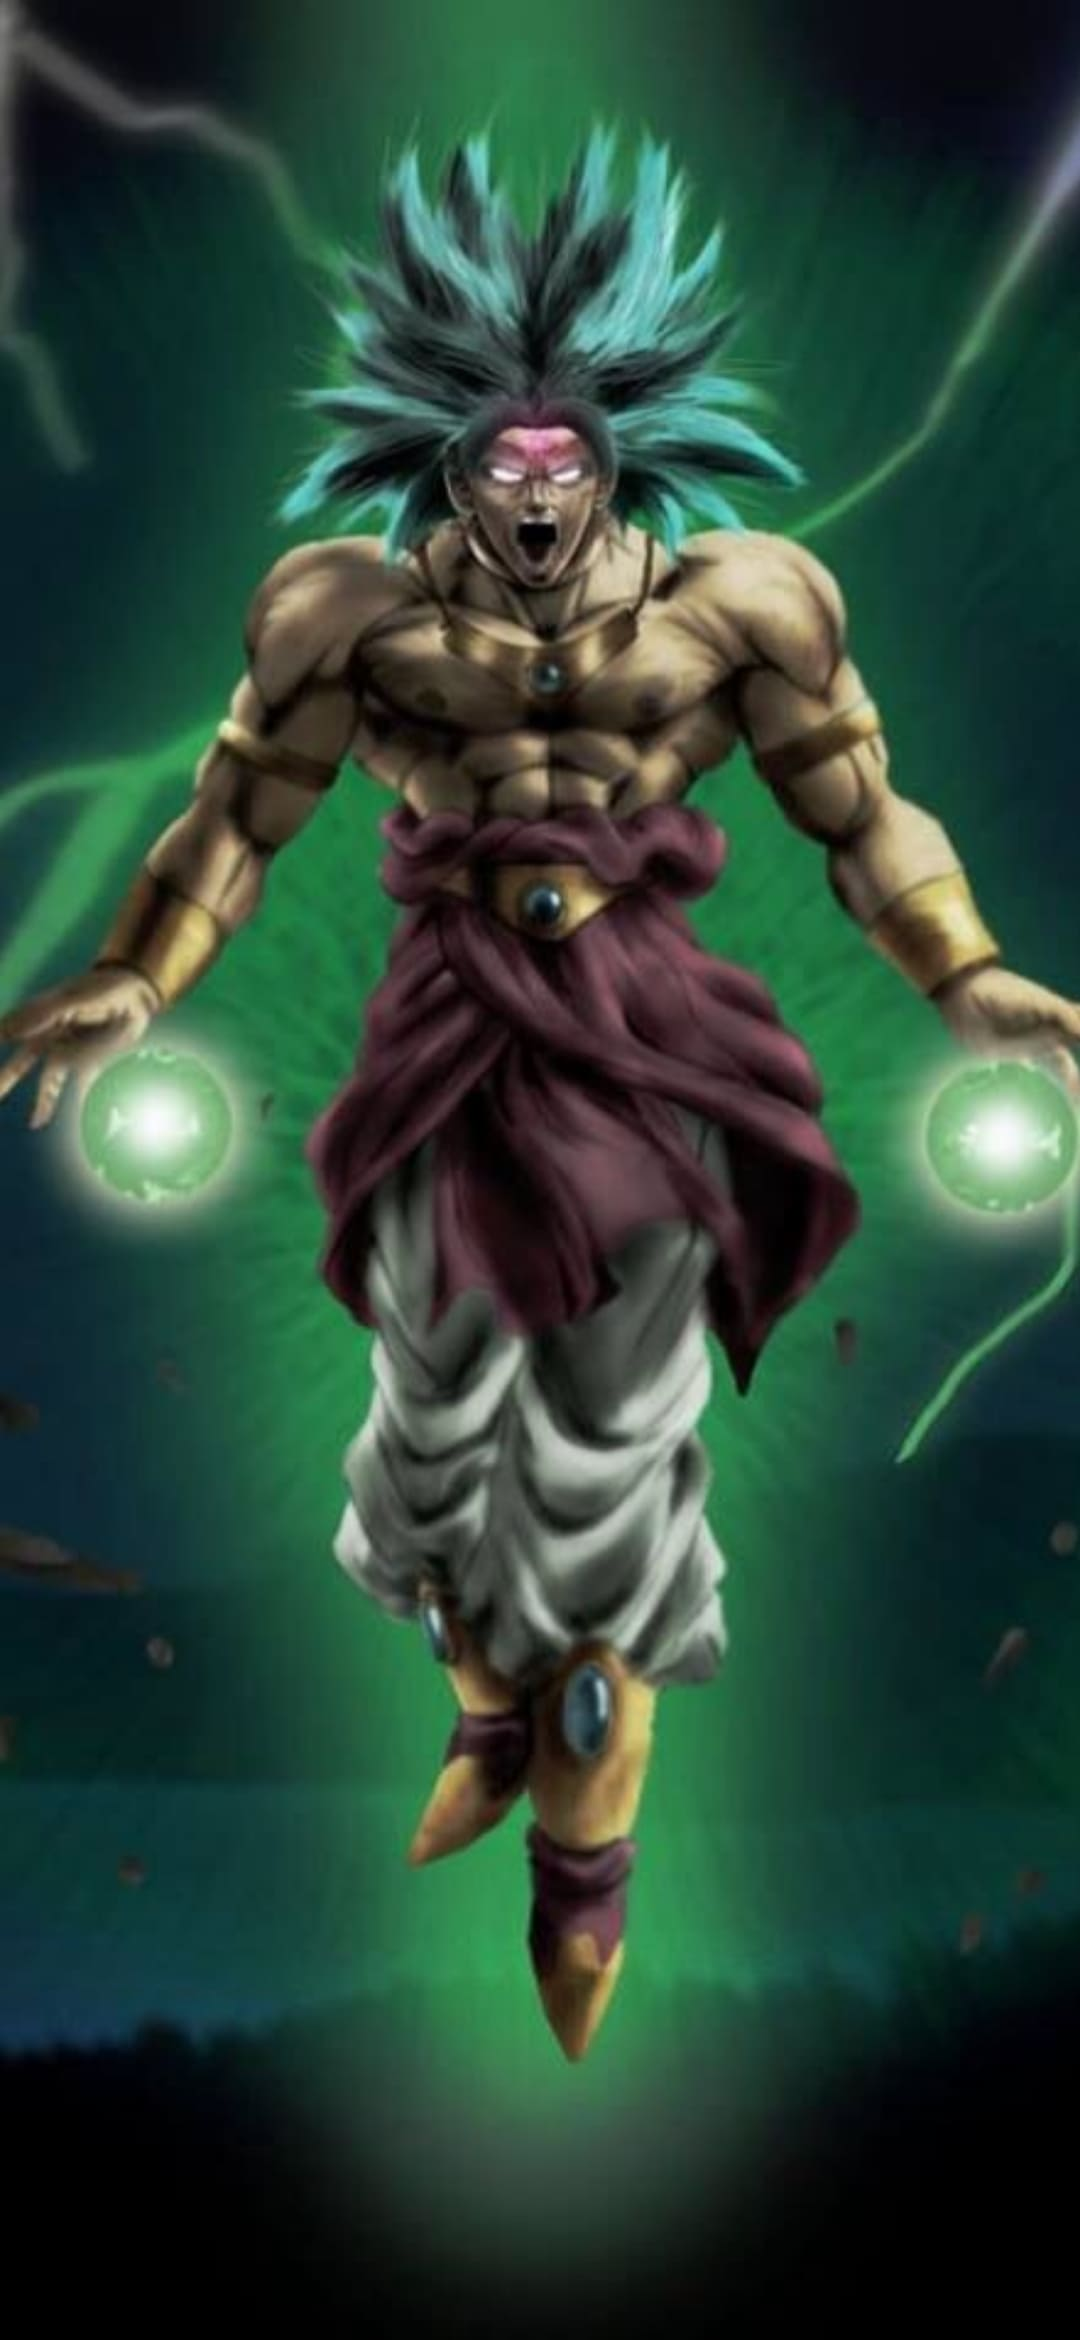 Broly Wallpapers Top Broly Wallpaper Download For Free Hd